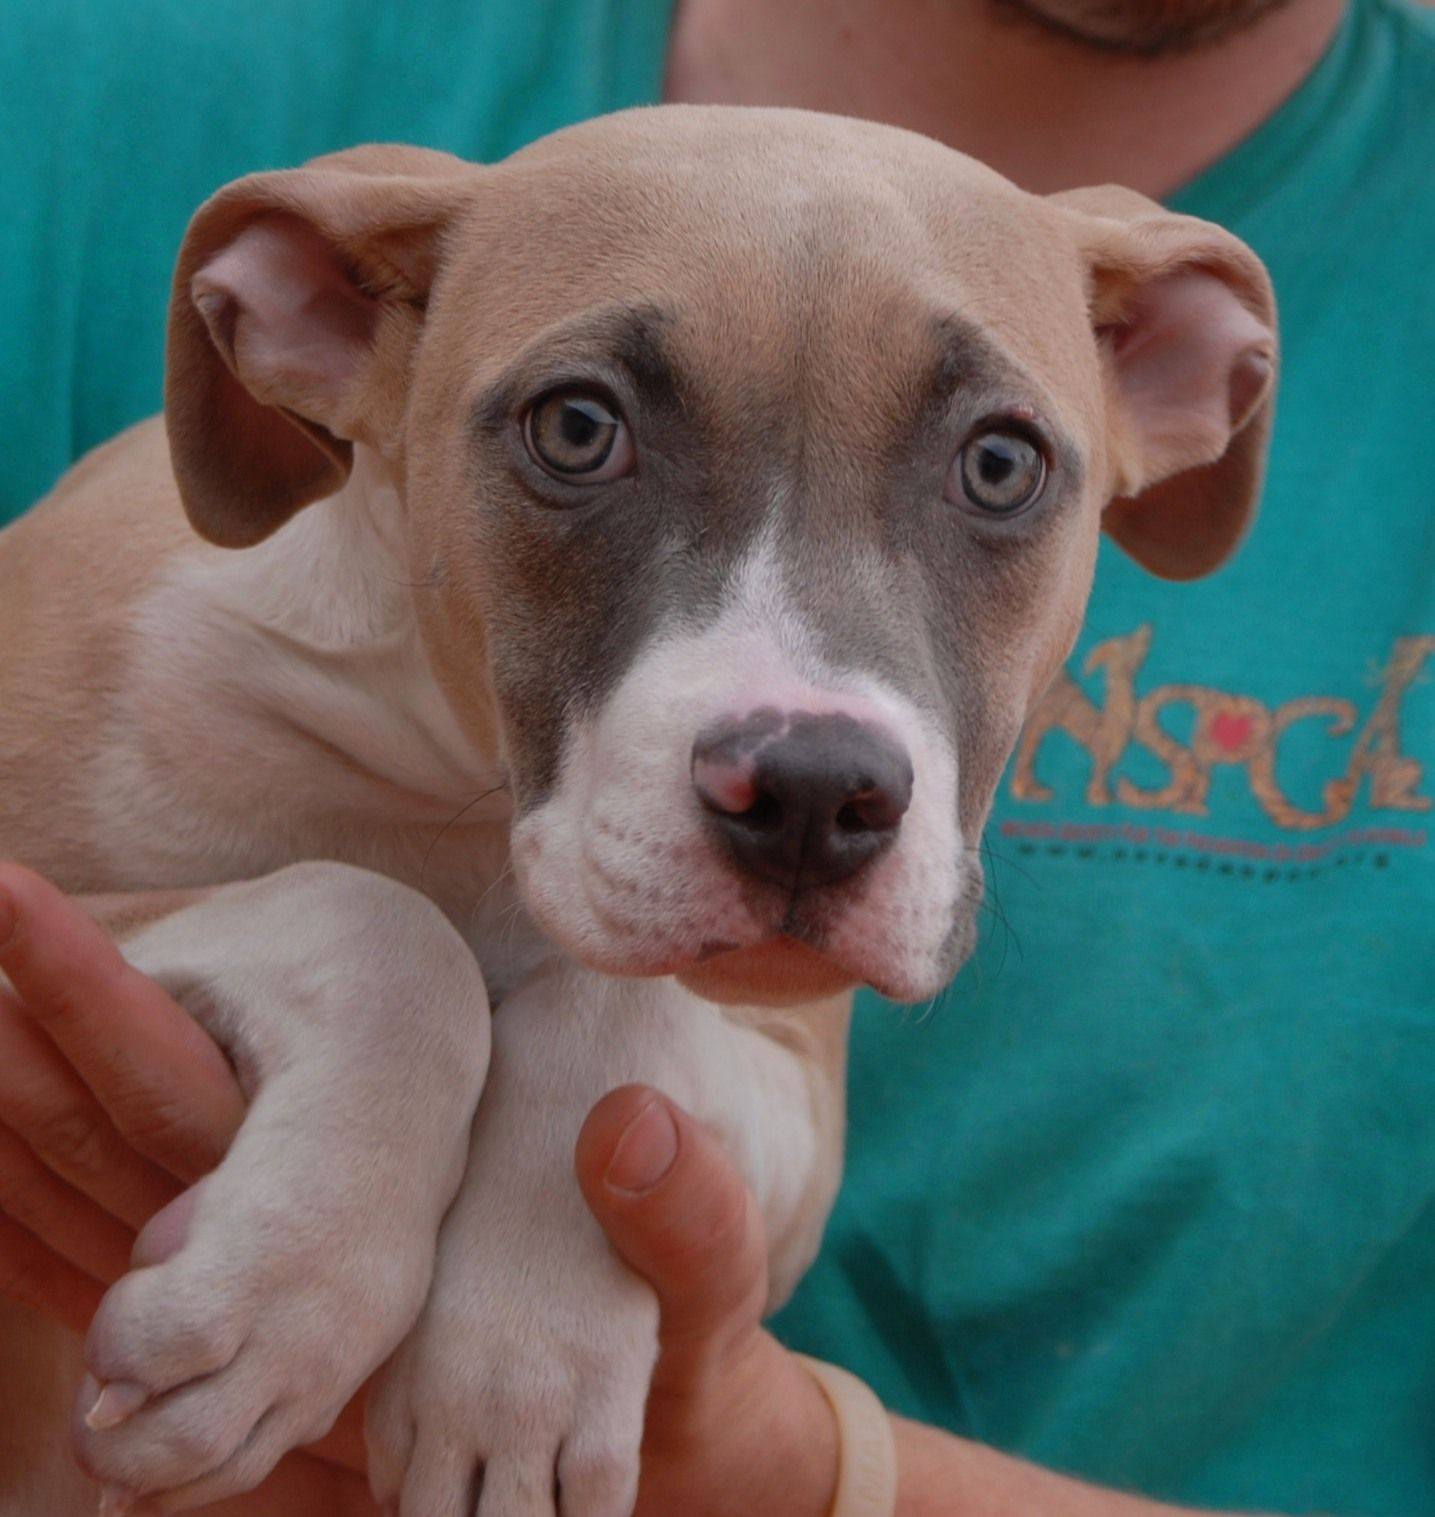 Honey Rose triumphantly debuts for adoption today at